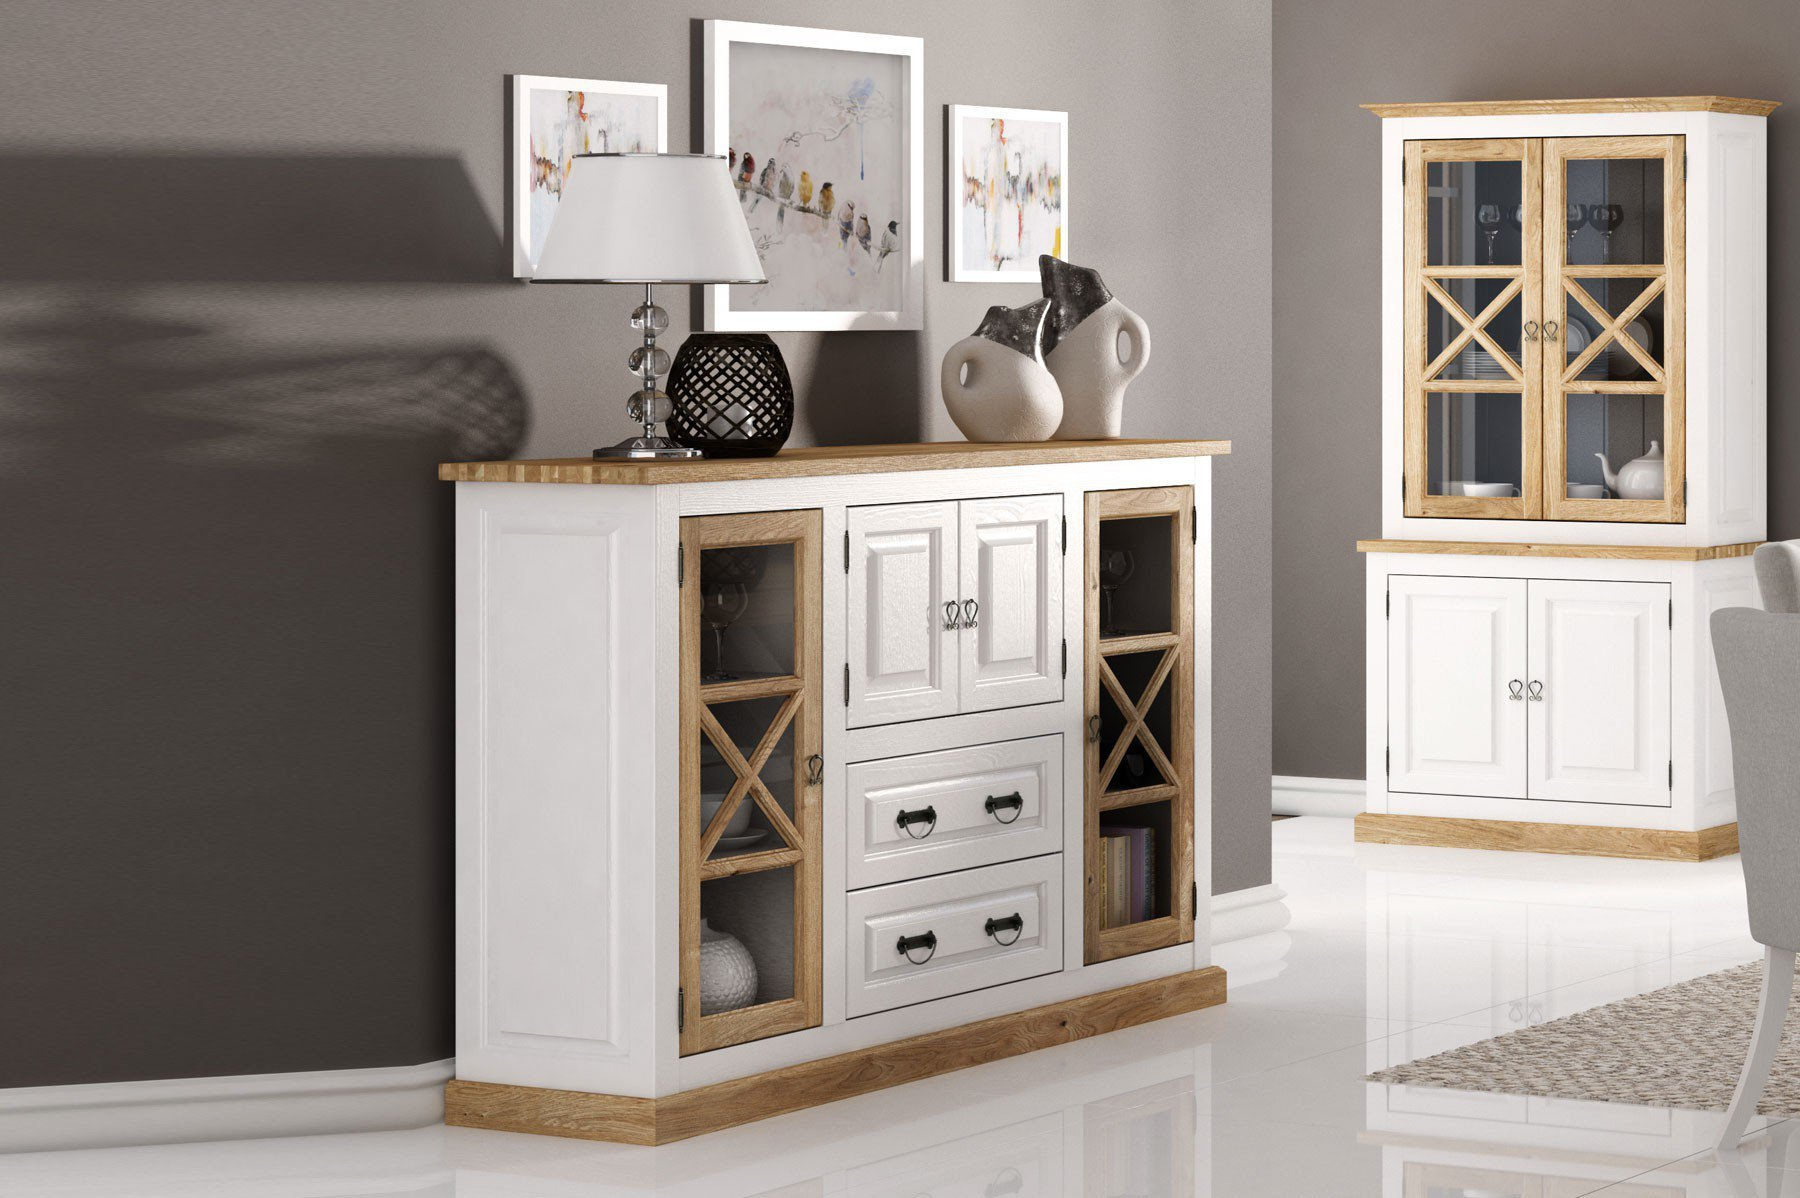 kollektion letz highboard romantica aus massiver kiefer wei m bel letz ihr online shop. Black Bedroom Furniture Sets. Home Design Ideas